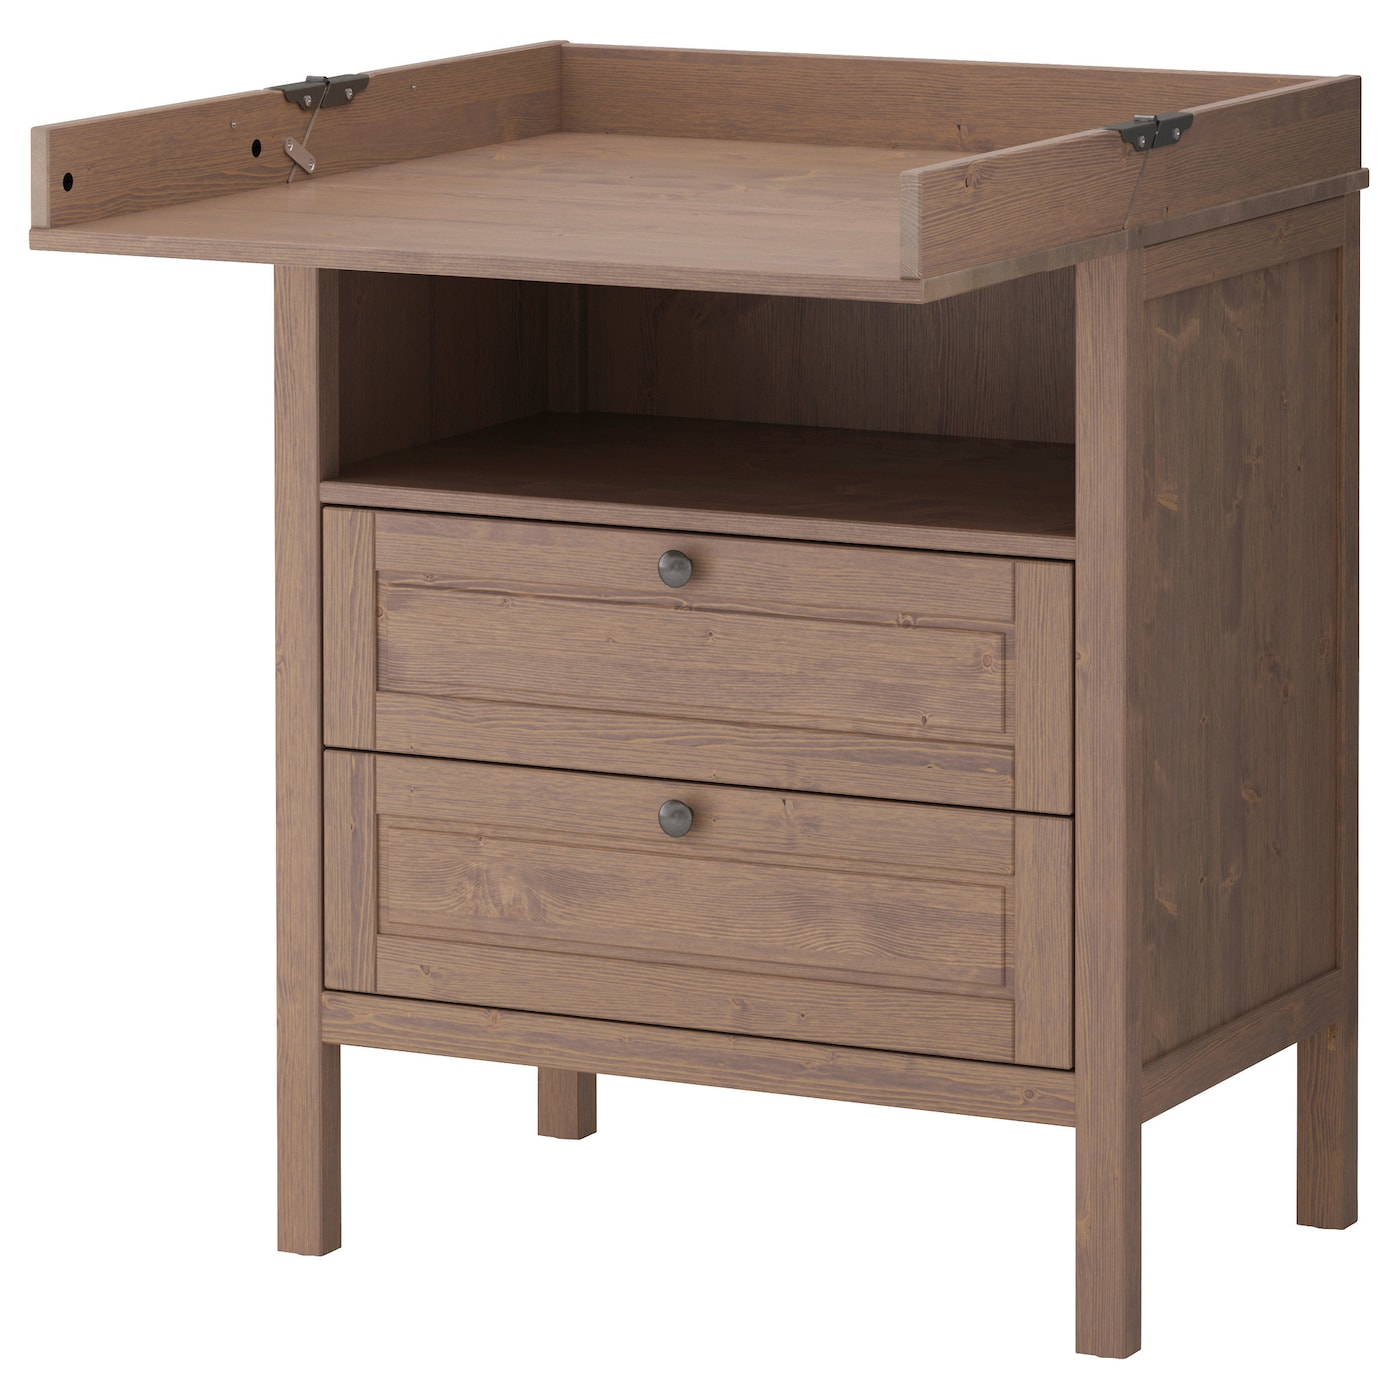 Ikea Kinderzimmer Verstauen ~ IKEA SUNDVIK changing table chest of drawers Comfortable height for